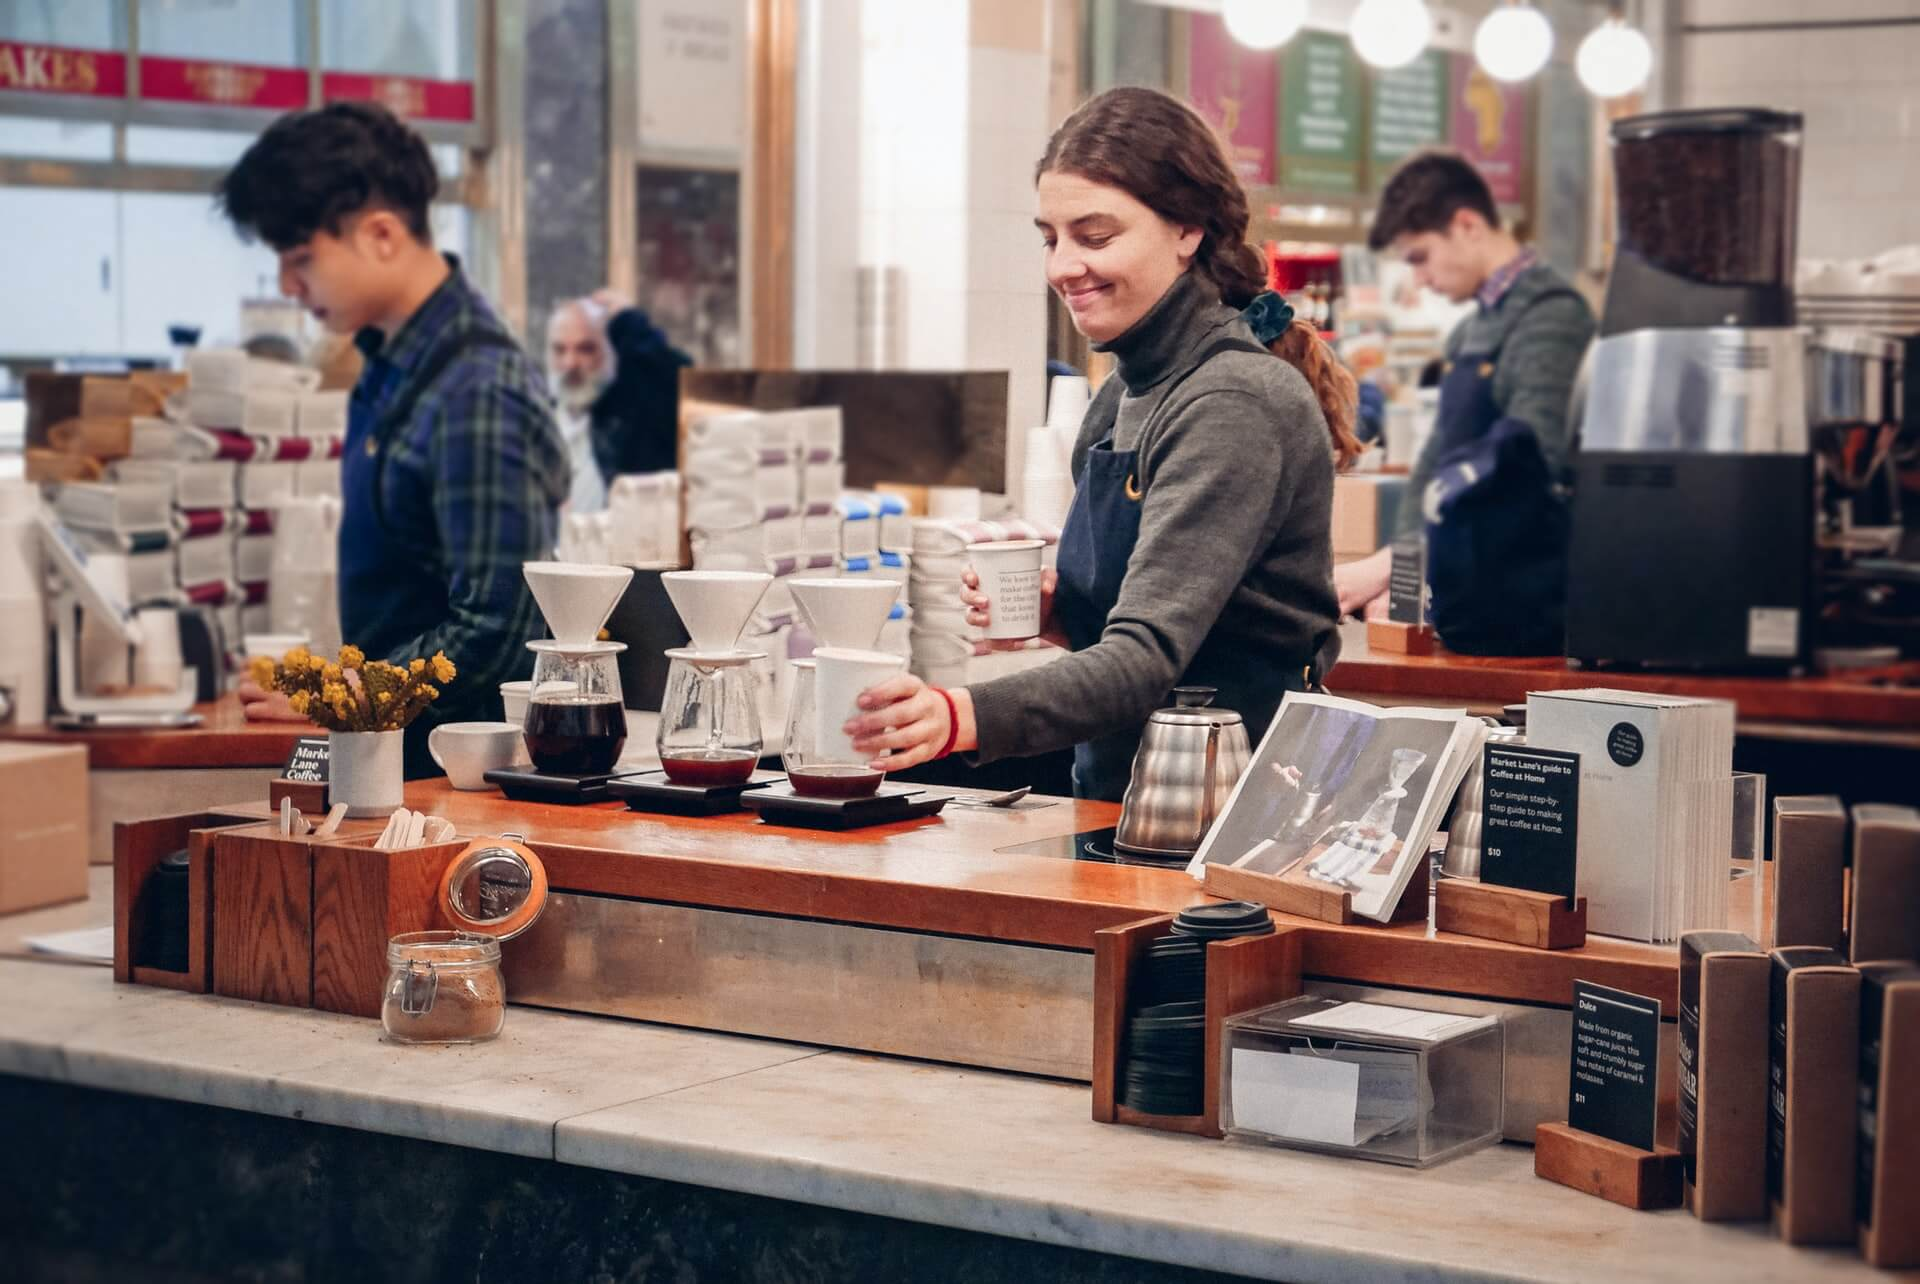 Young woman serving coffee at a cafe